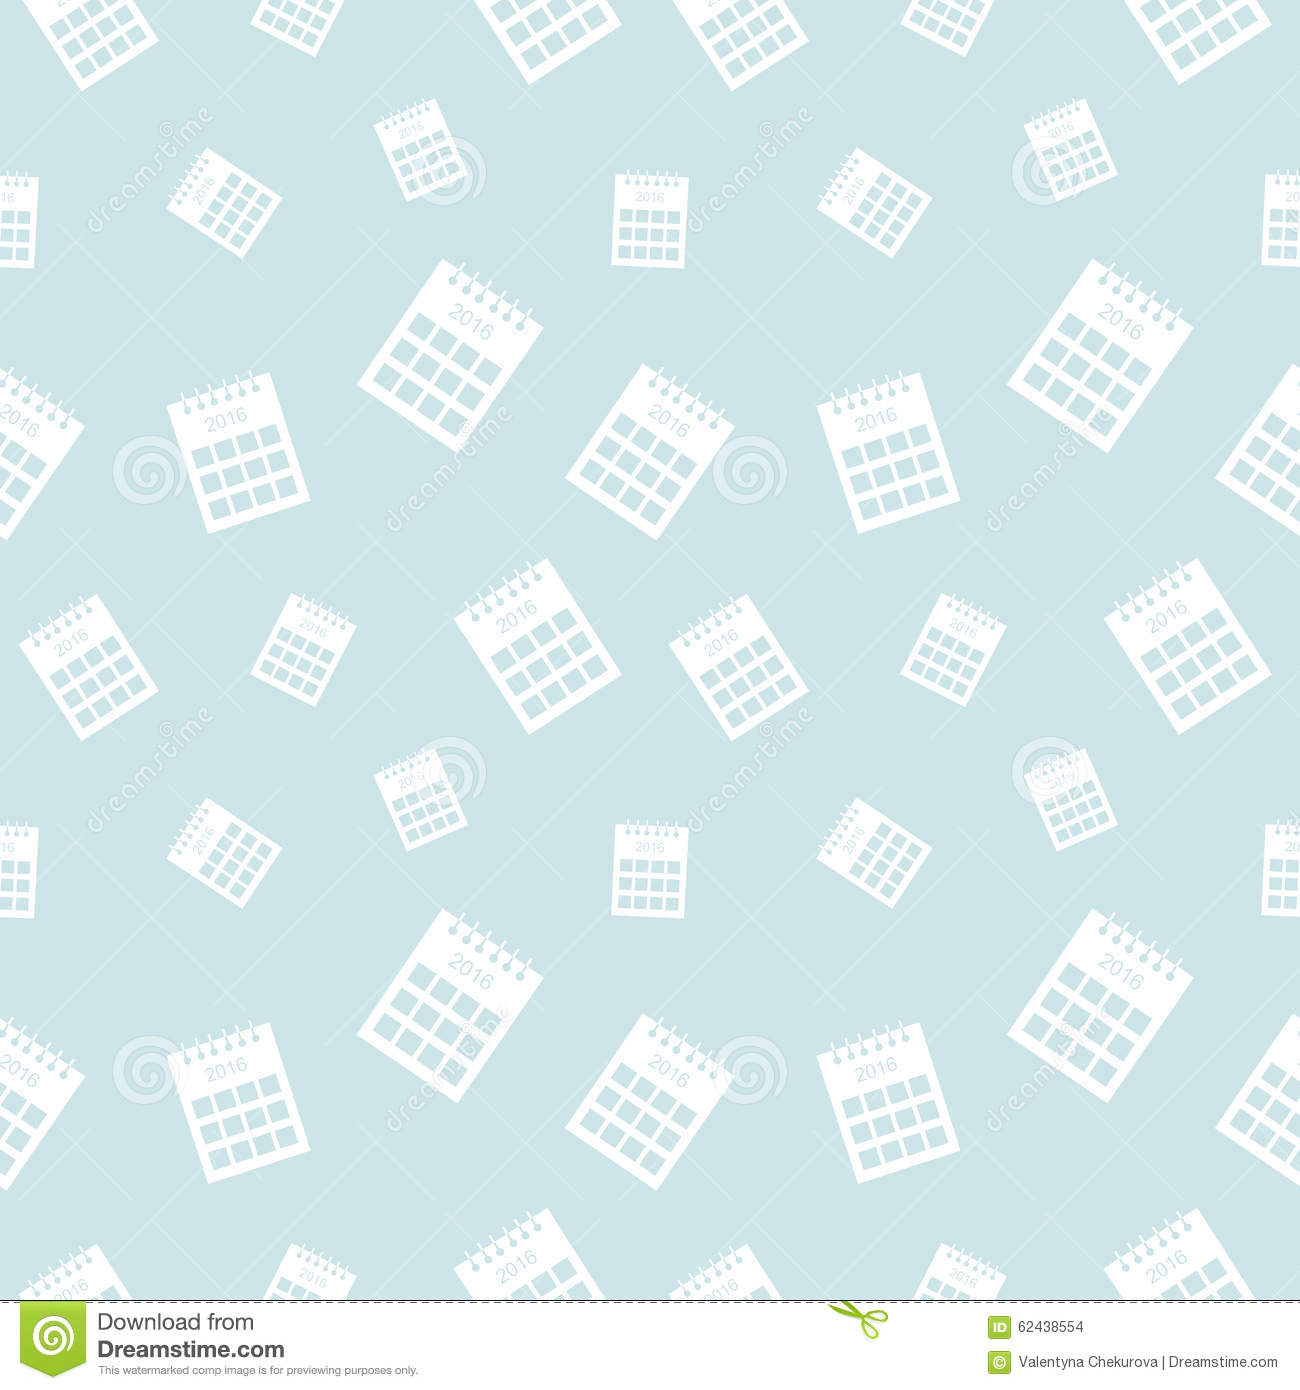 Seamless Vector Pattern, Light Shadeless Background With Calendars ...